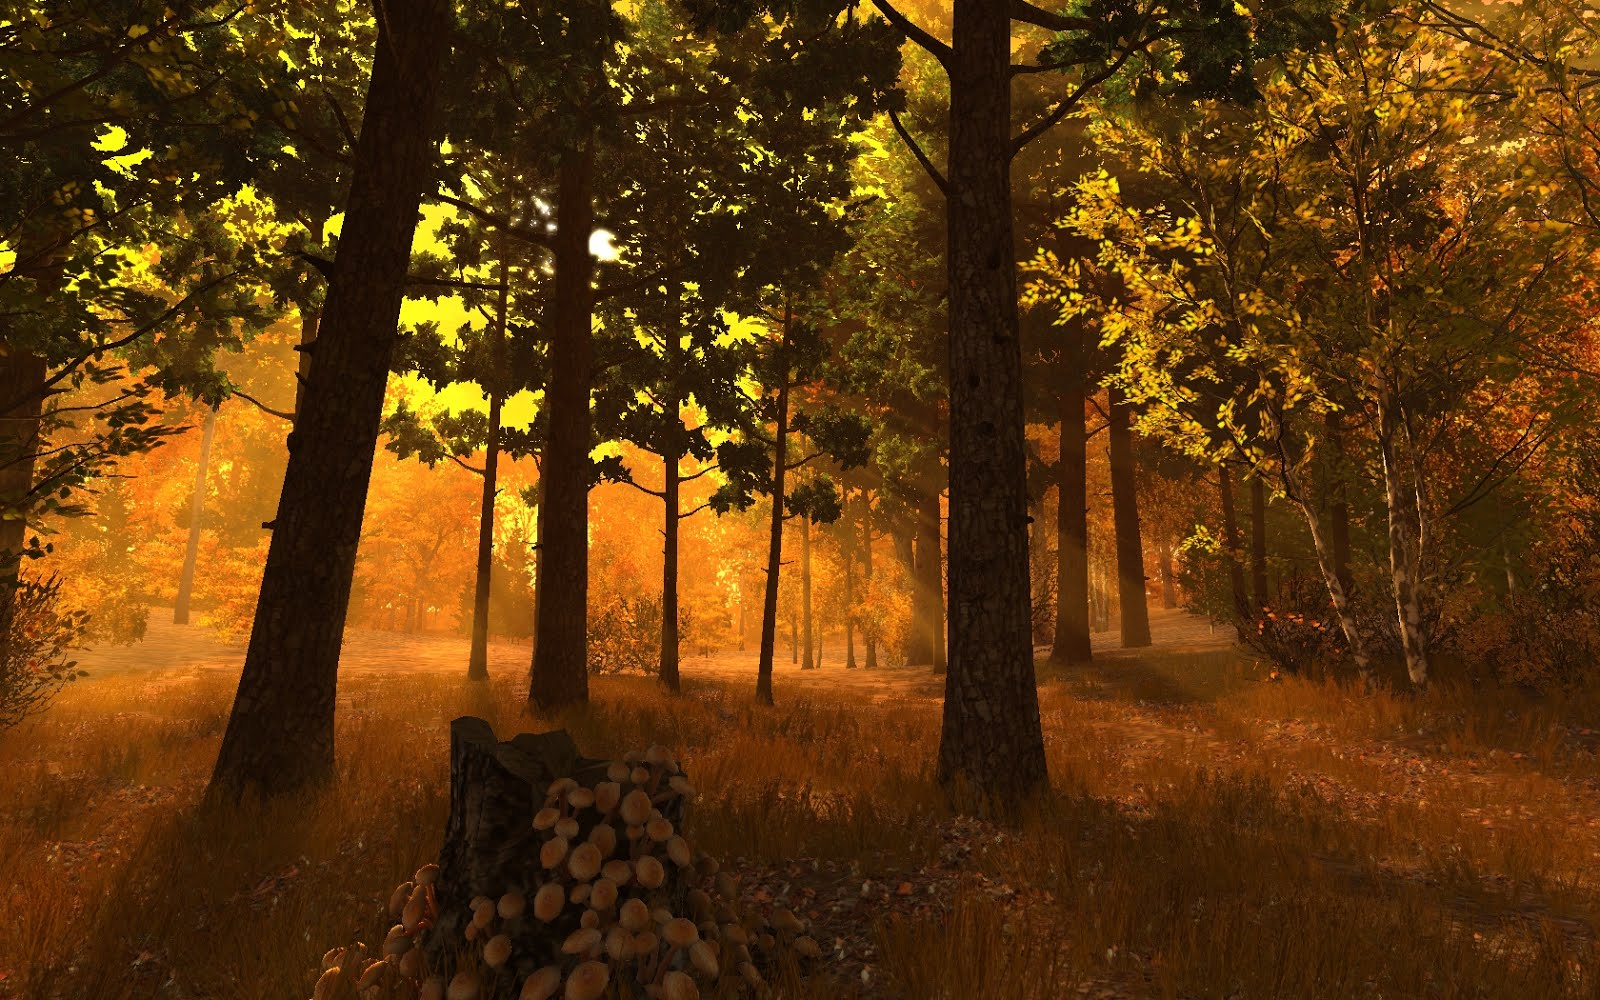 Autumn Forest Screenshot 01.jpg